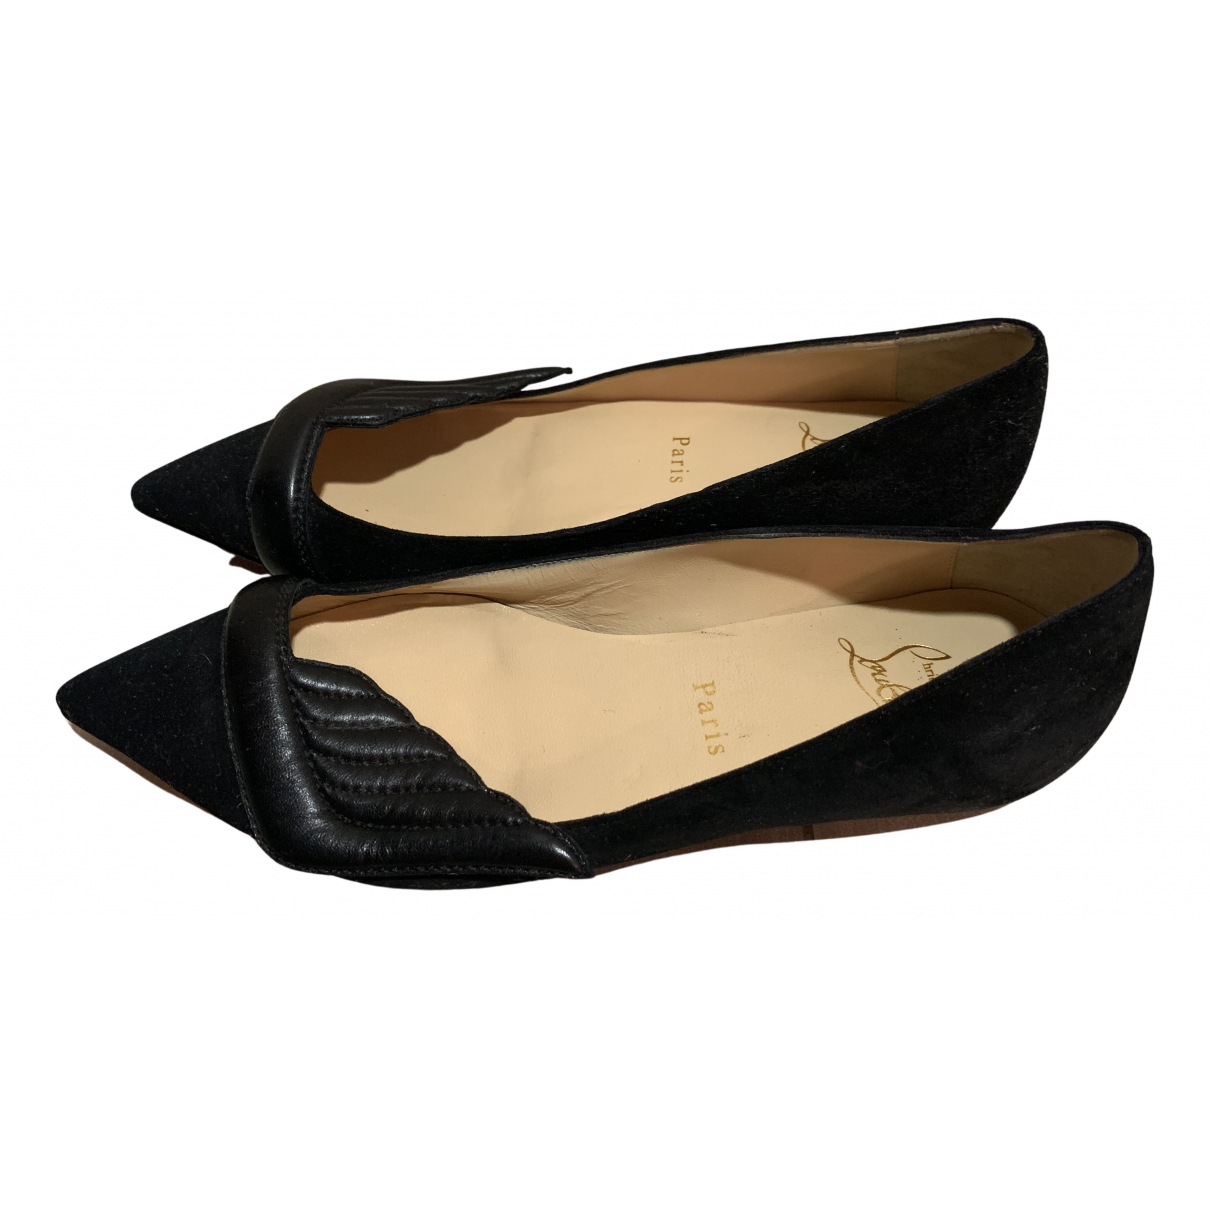 Christian Louboutin N Black Suede Flats for Women 36.5 EU